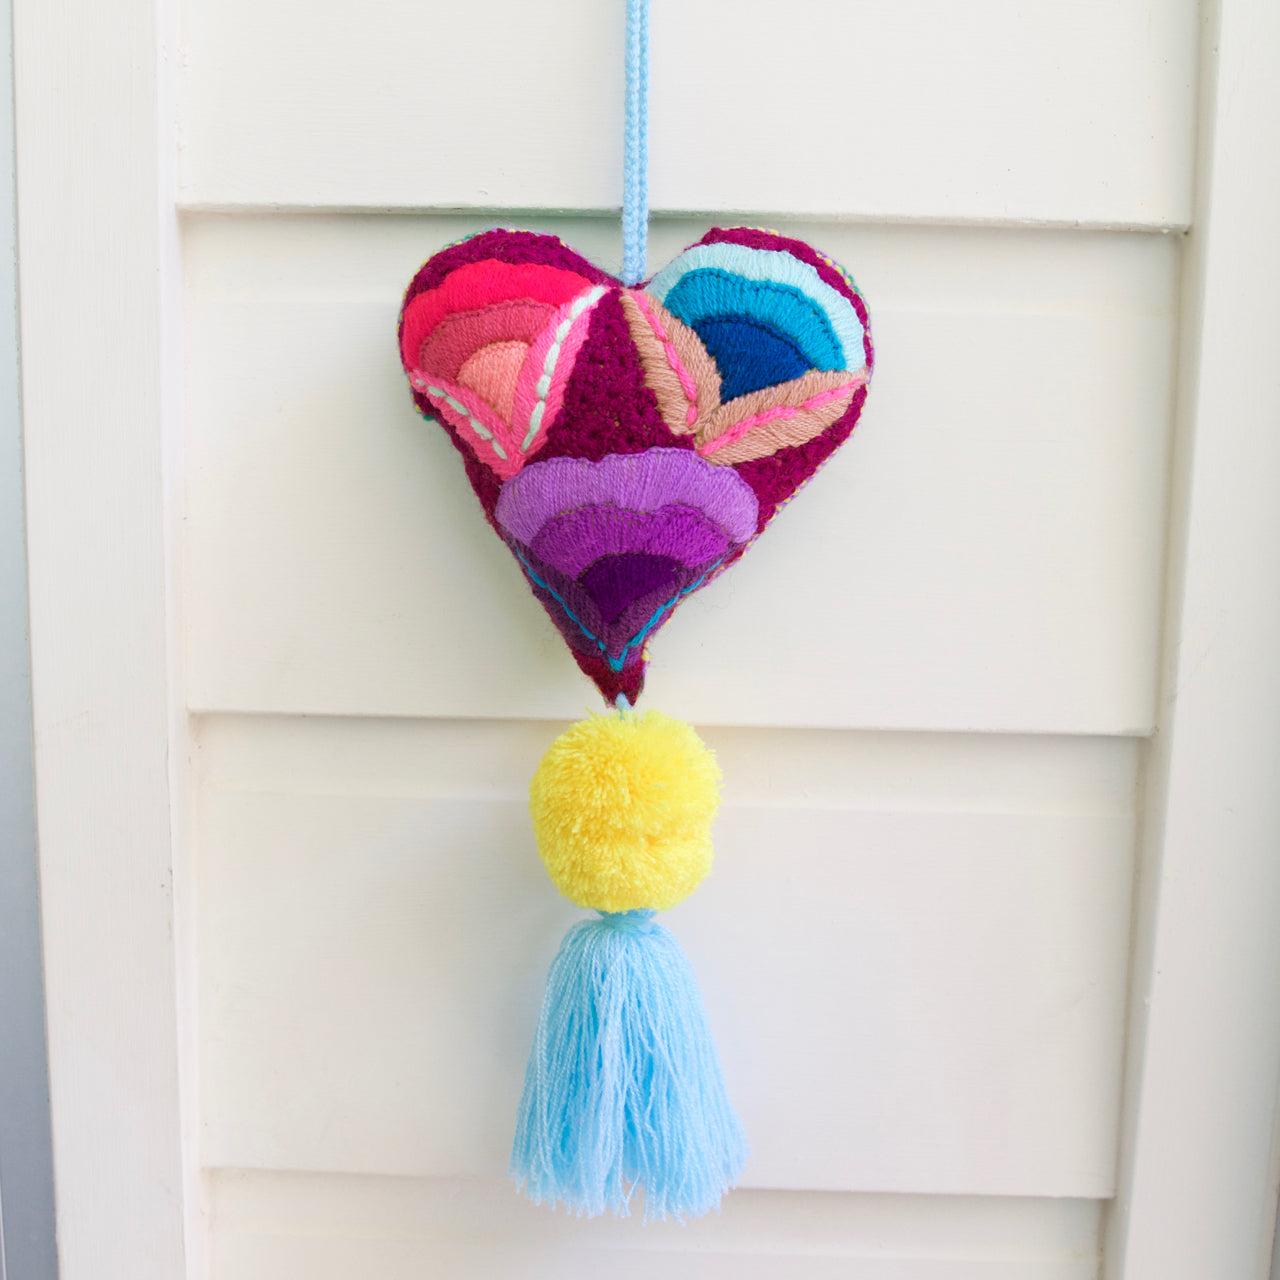 Corazon Pom Pom 54  Decor Blue - Cielo Collective handmade Mexico Guatemala